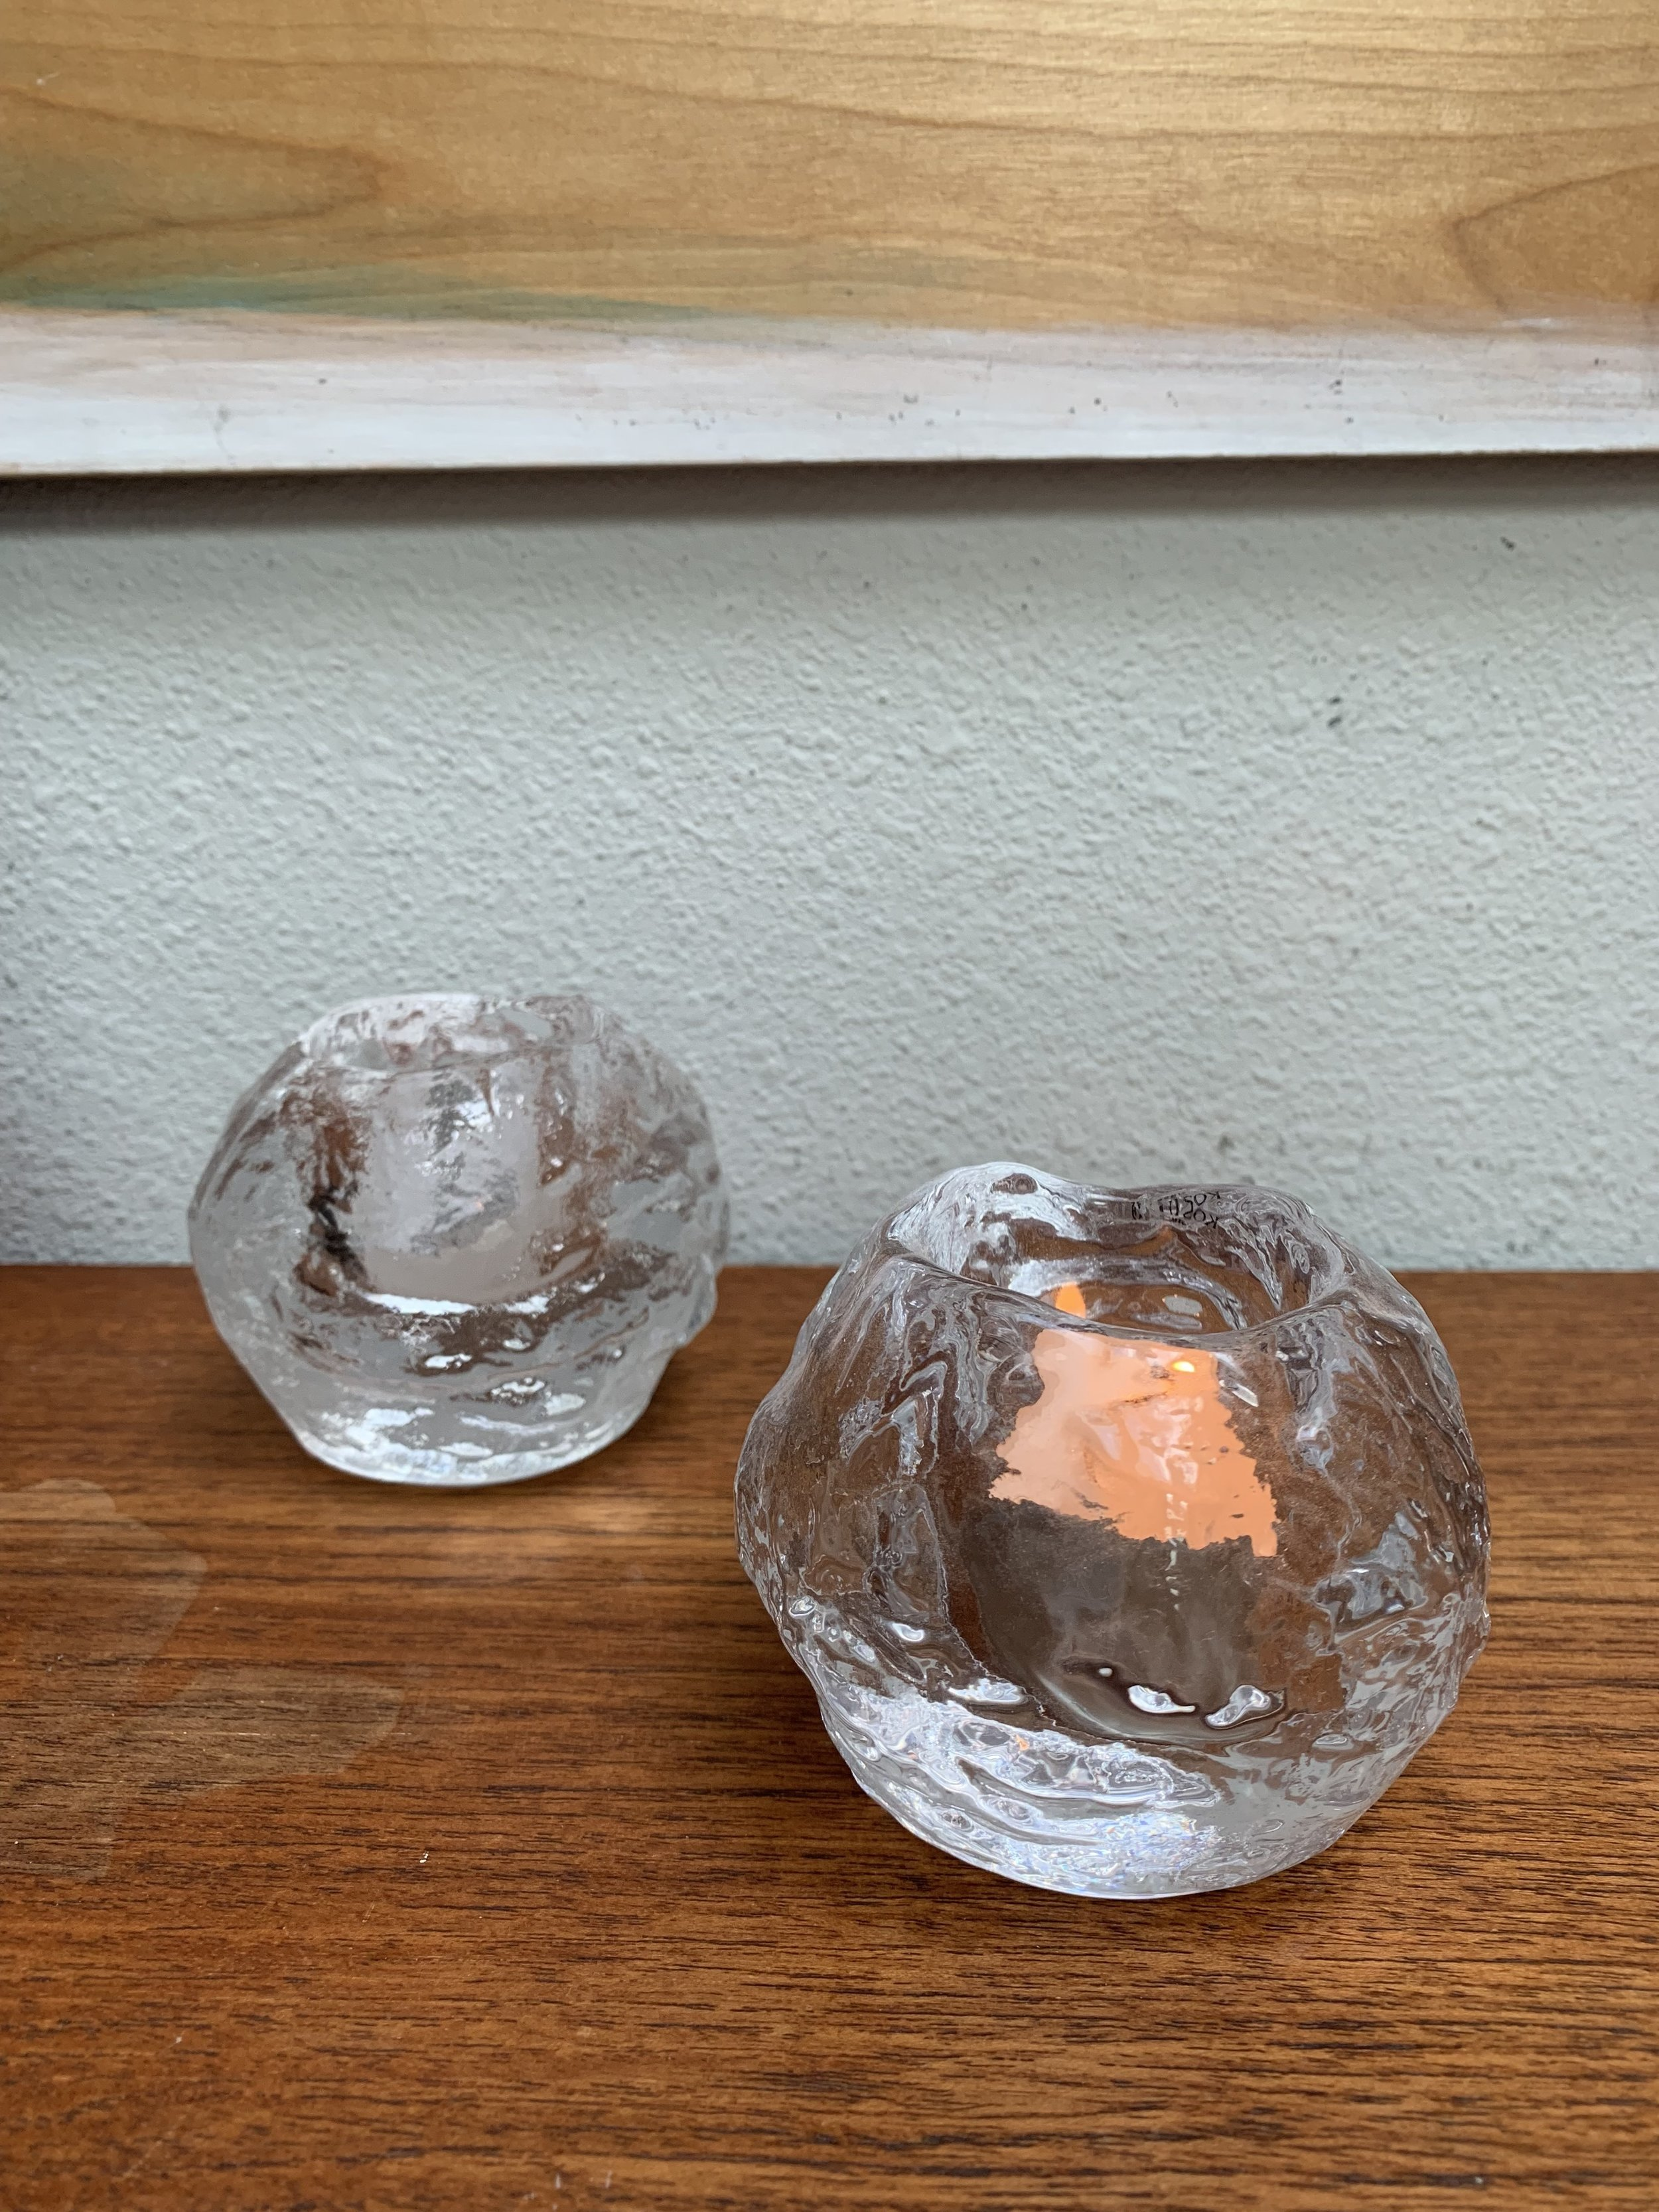 Orrefors glassworks - In terms of glassworks, we love nordic light snowball voltages. The original nordic light snowballs were designed by Swede Ann Wolf in 1973 in the Swedish village of Orrefors. They are incredibly well-made and distinct. A great gift for almost any home. The ones that were gifted to us are from Kosta Boda. Also available at BBB.